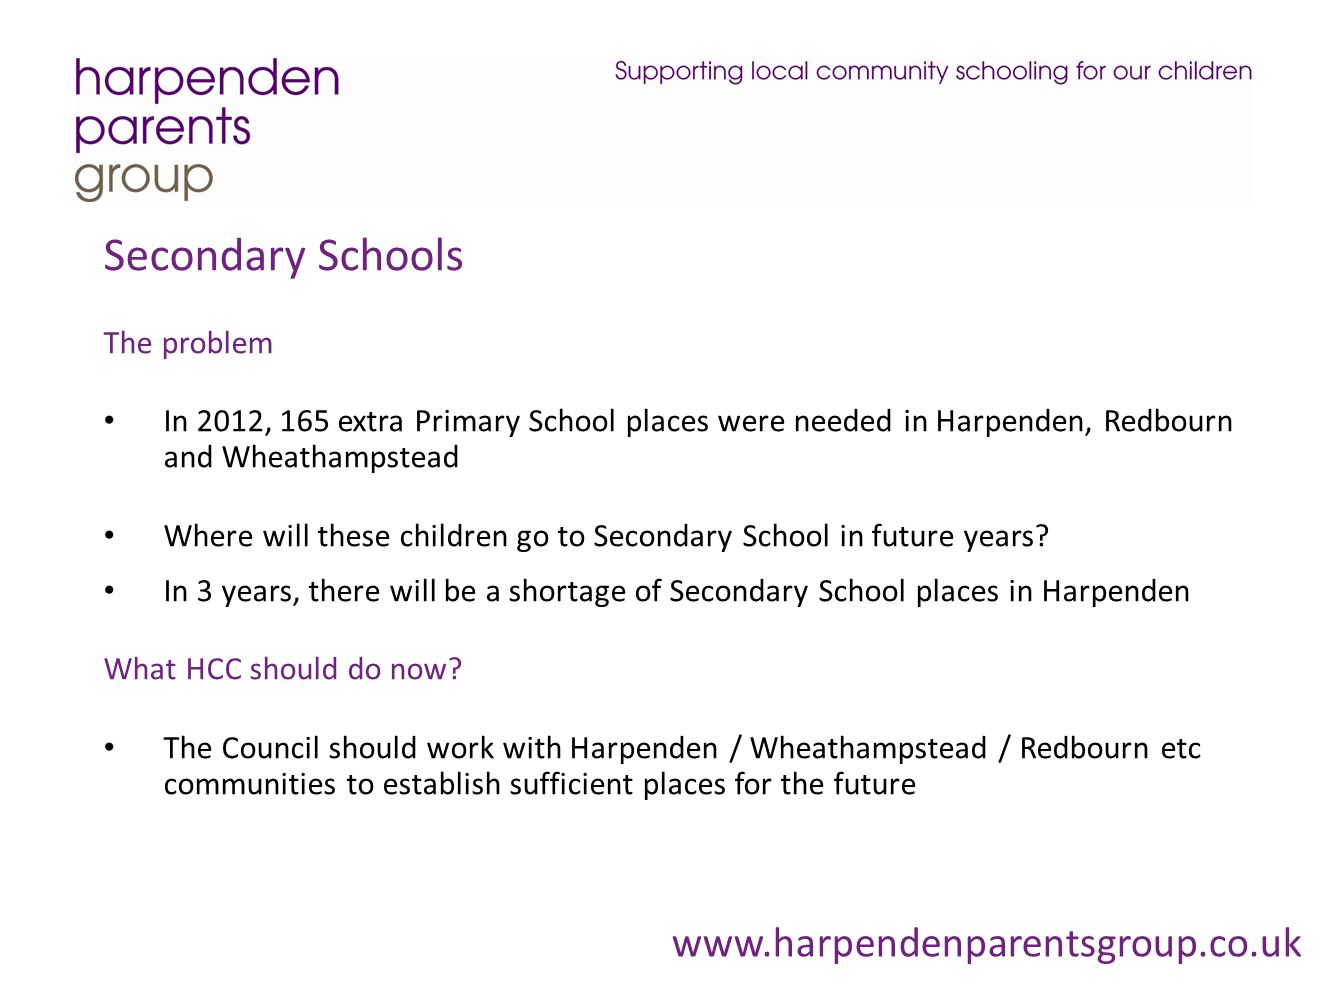 Secondary Schools The problem In 2012, 165 extra Primary School places were needed in Harpenden, Redbourn and Wheathampstead Where will these children